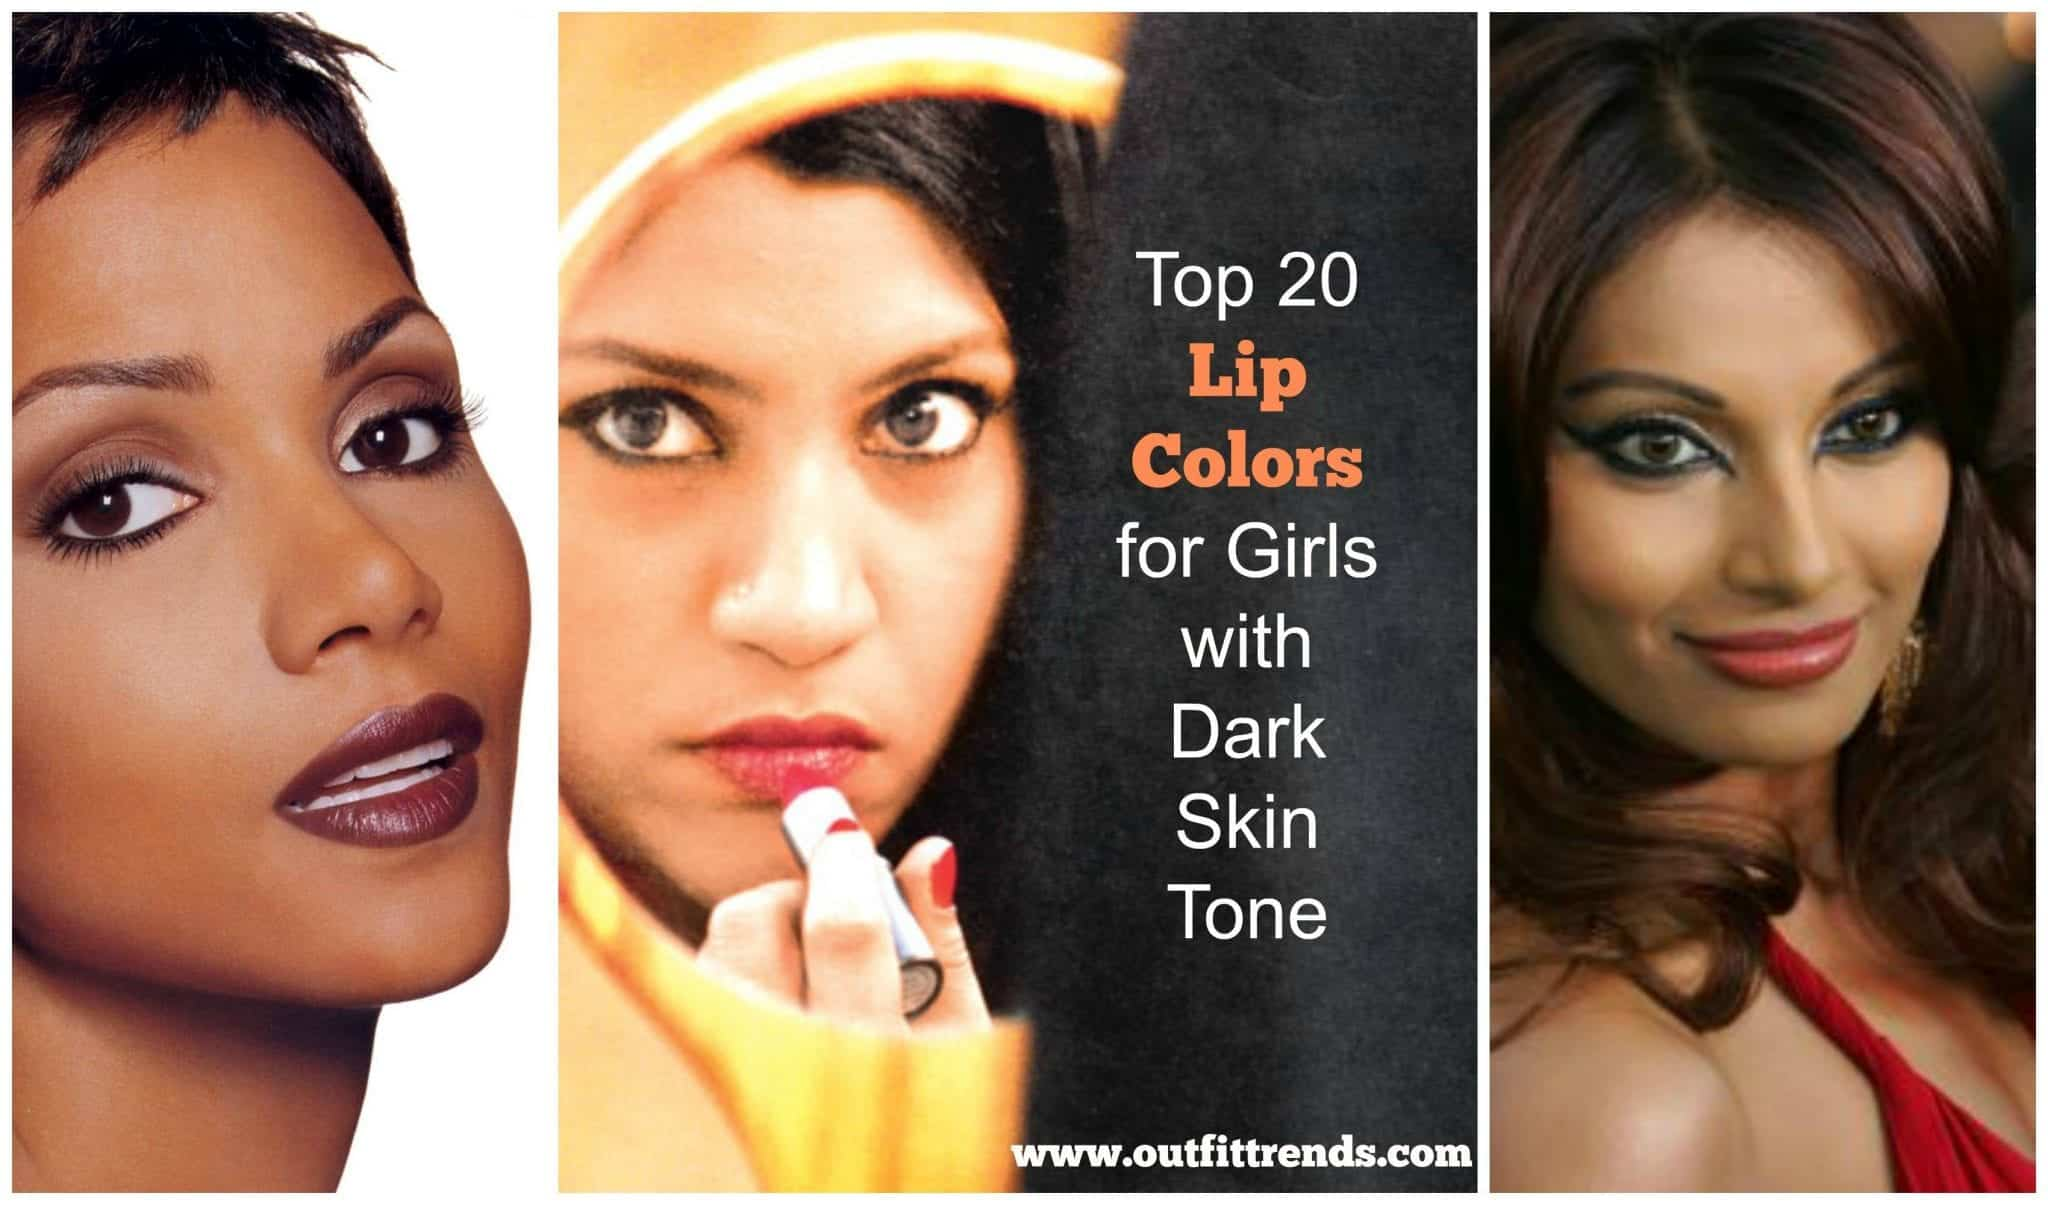 20 Best Lipstick Shades For Girls With Dark Skin Tone